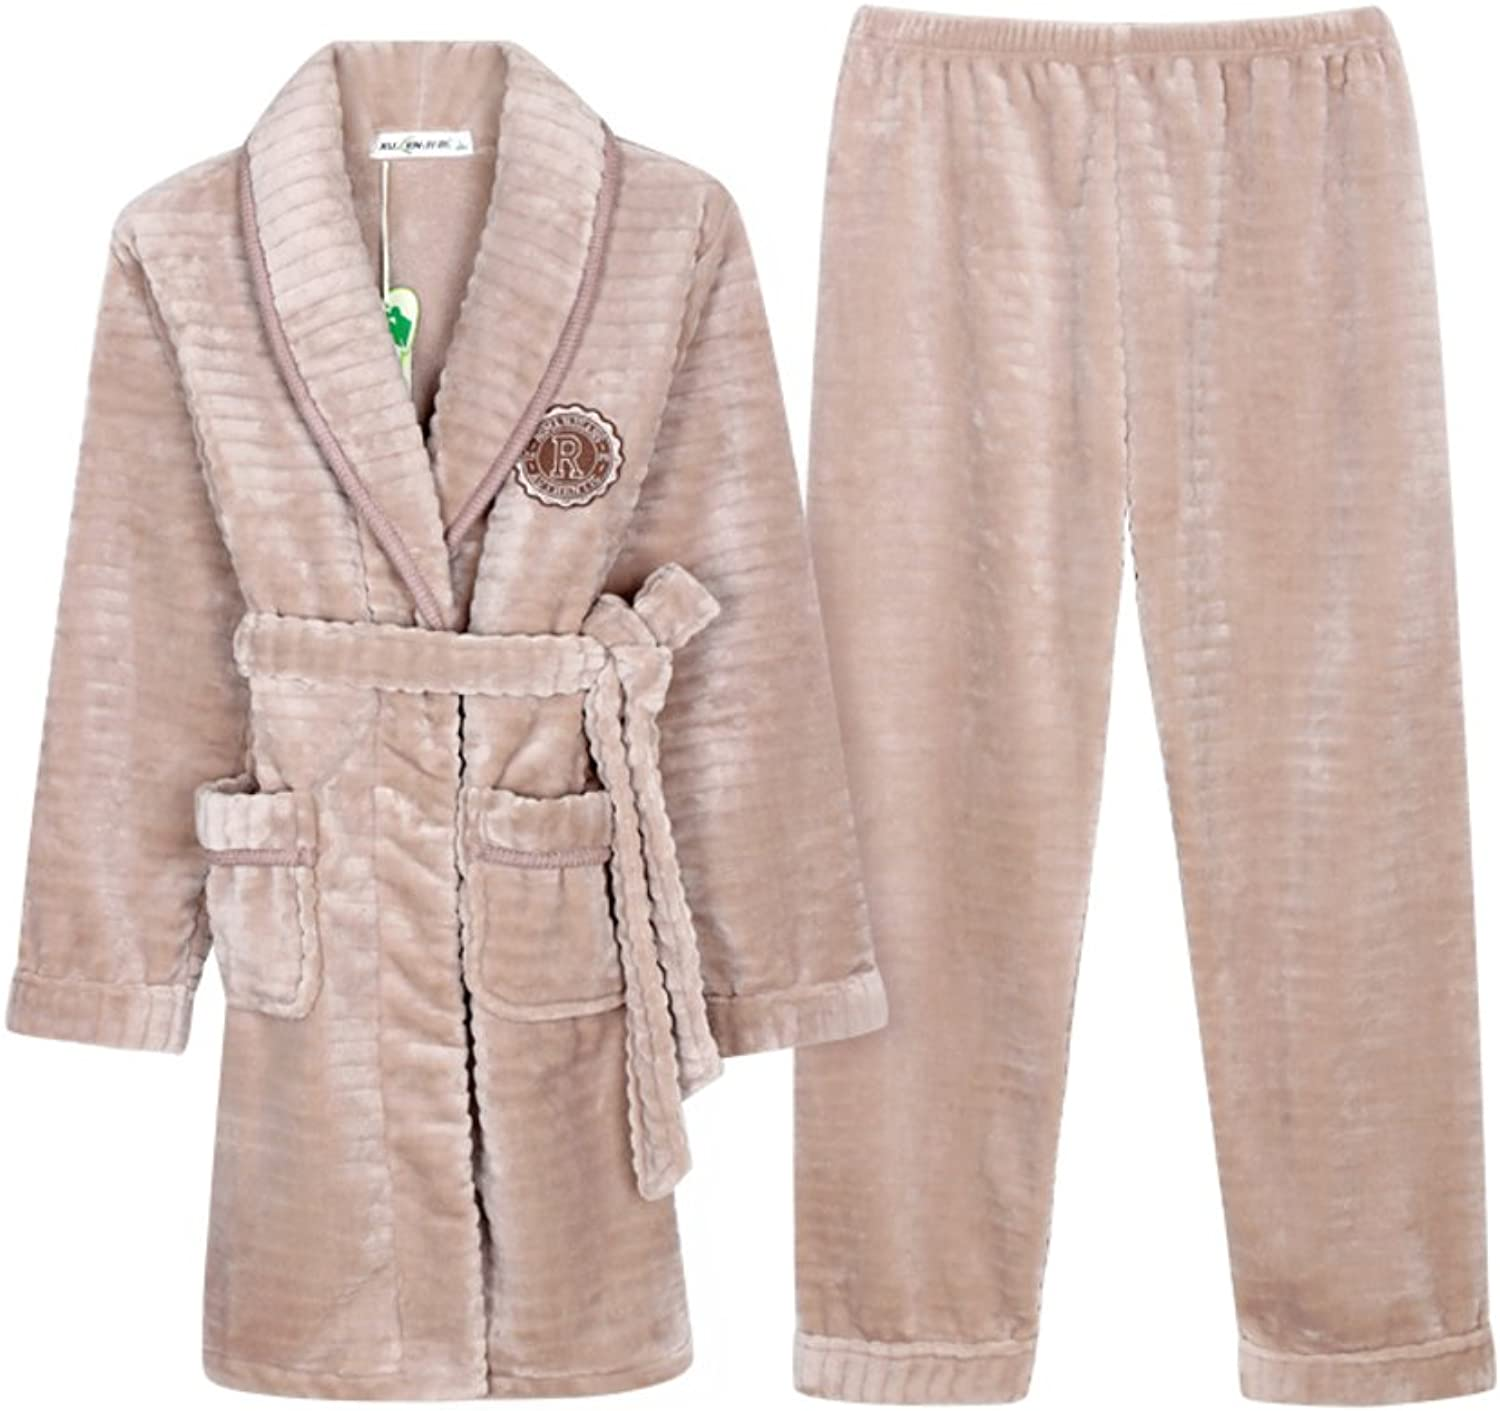 Couples Pyjamas Autumn And Winter Long Thicken Coral Women's Nightwear